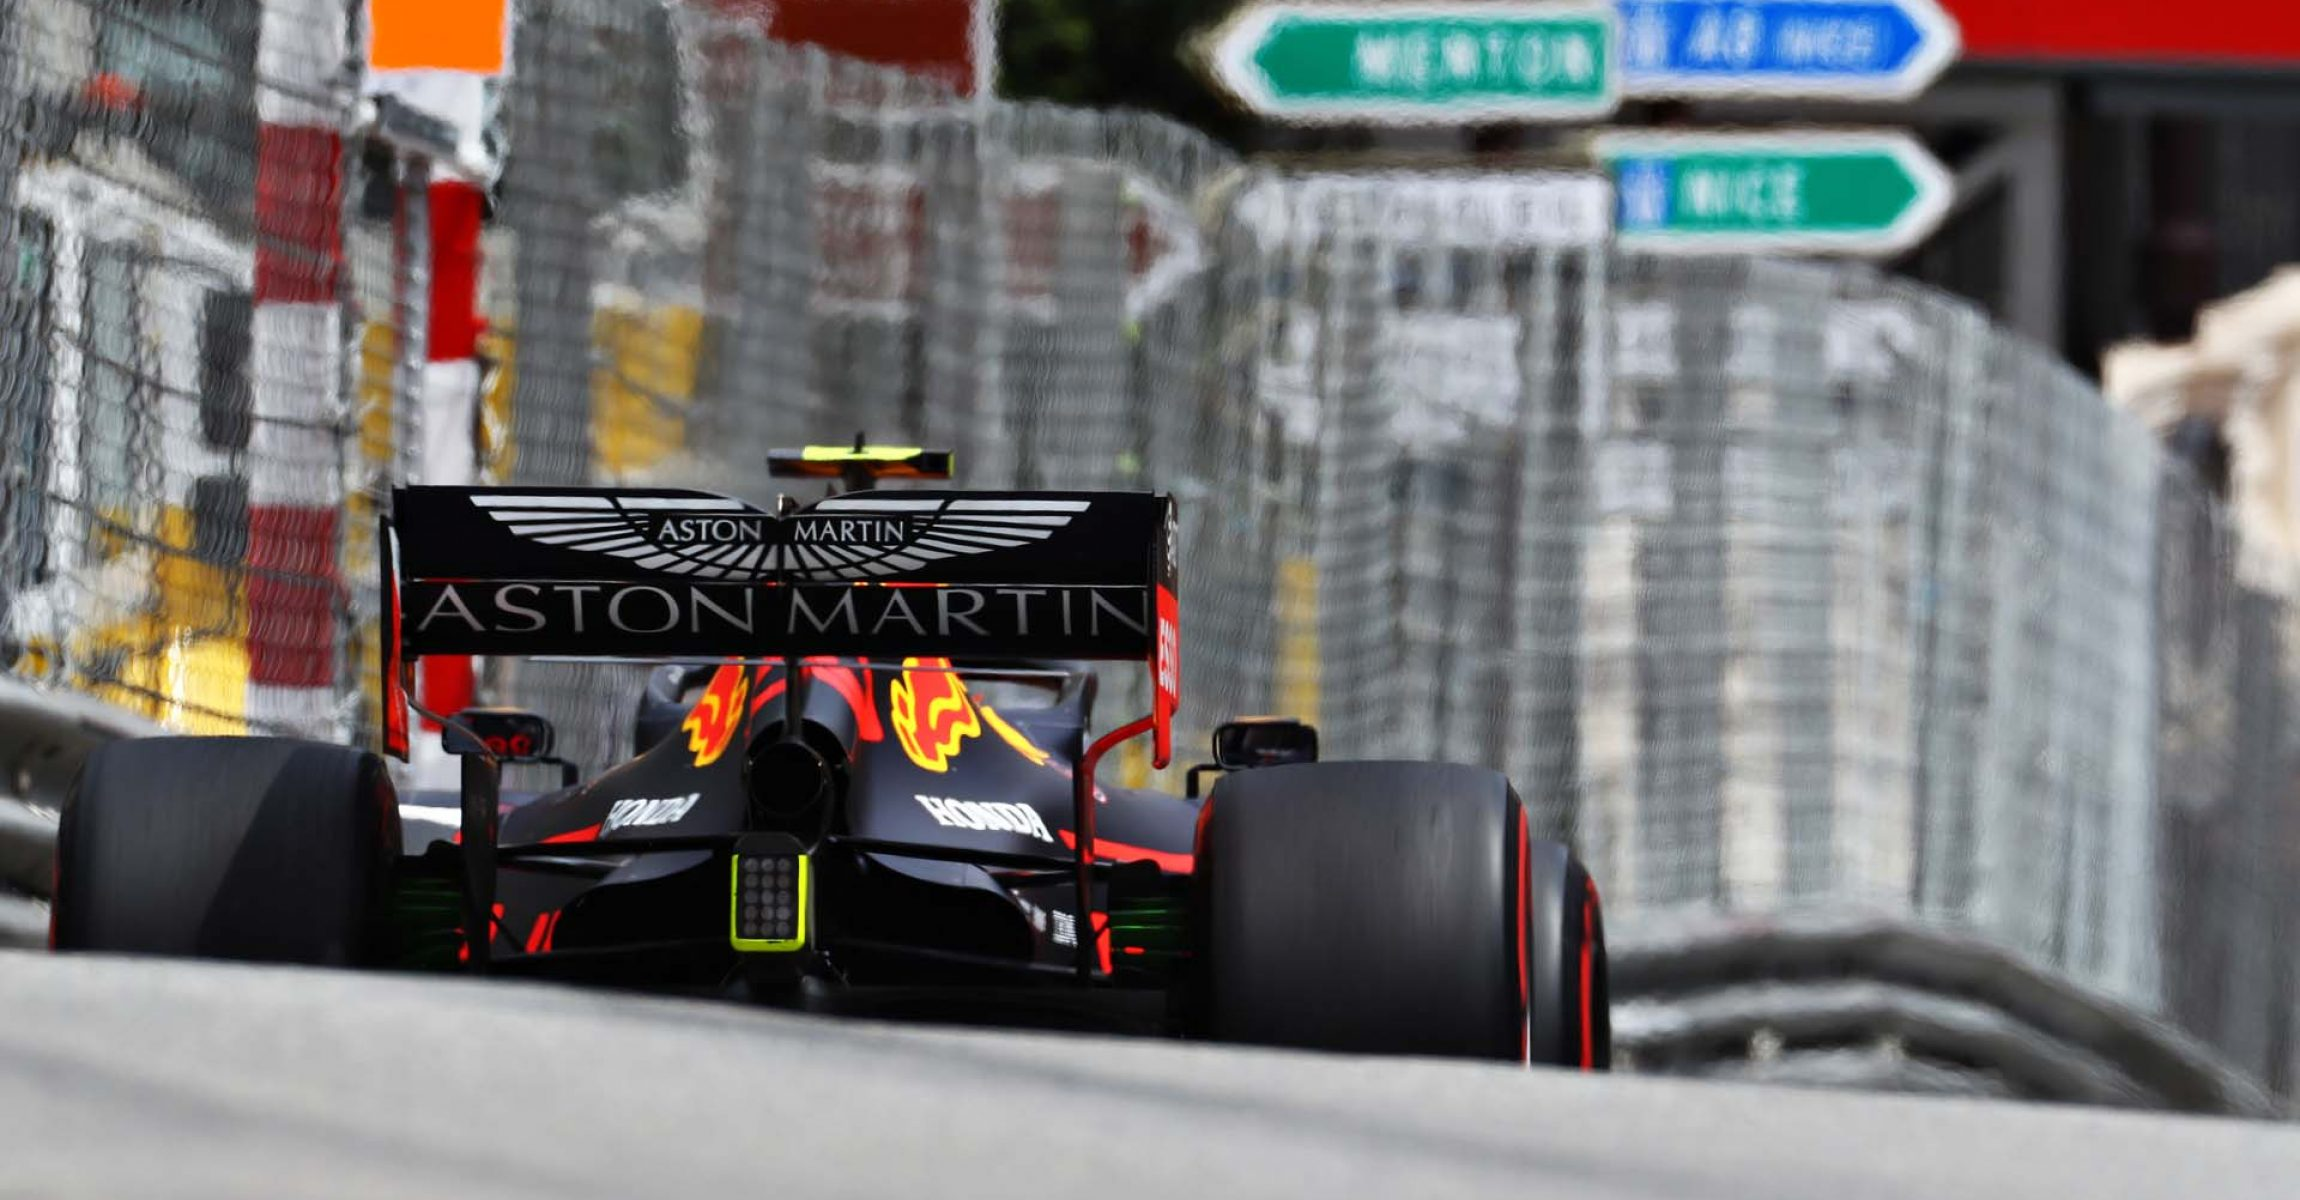 MONTE-CARLO, MONACO - MAY 25: Pierre Gasly of France driving the (10) Aston Martin Red Bull Racing RB15 on track during final practice for the F1 Grand Prix of Monaco at Circuit de Monaco on May 25, 2019 in Monte-Carlo, Monaco. (Photo by Mark Thompson/Getty Images) // Getty Images / Red Bull Content Pool // AP-1ZENTW4MH2111 // Usage for editorial use only // Please go to www.redbullcontentpool.com for further information. //